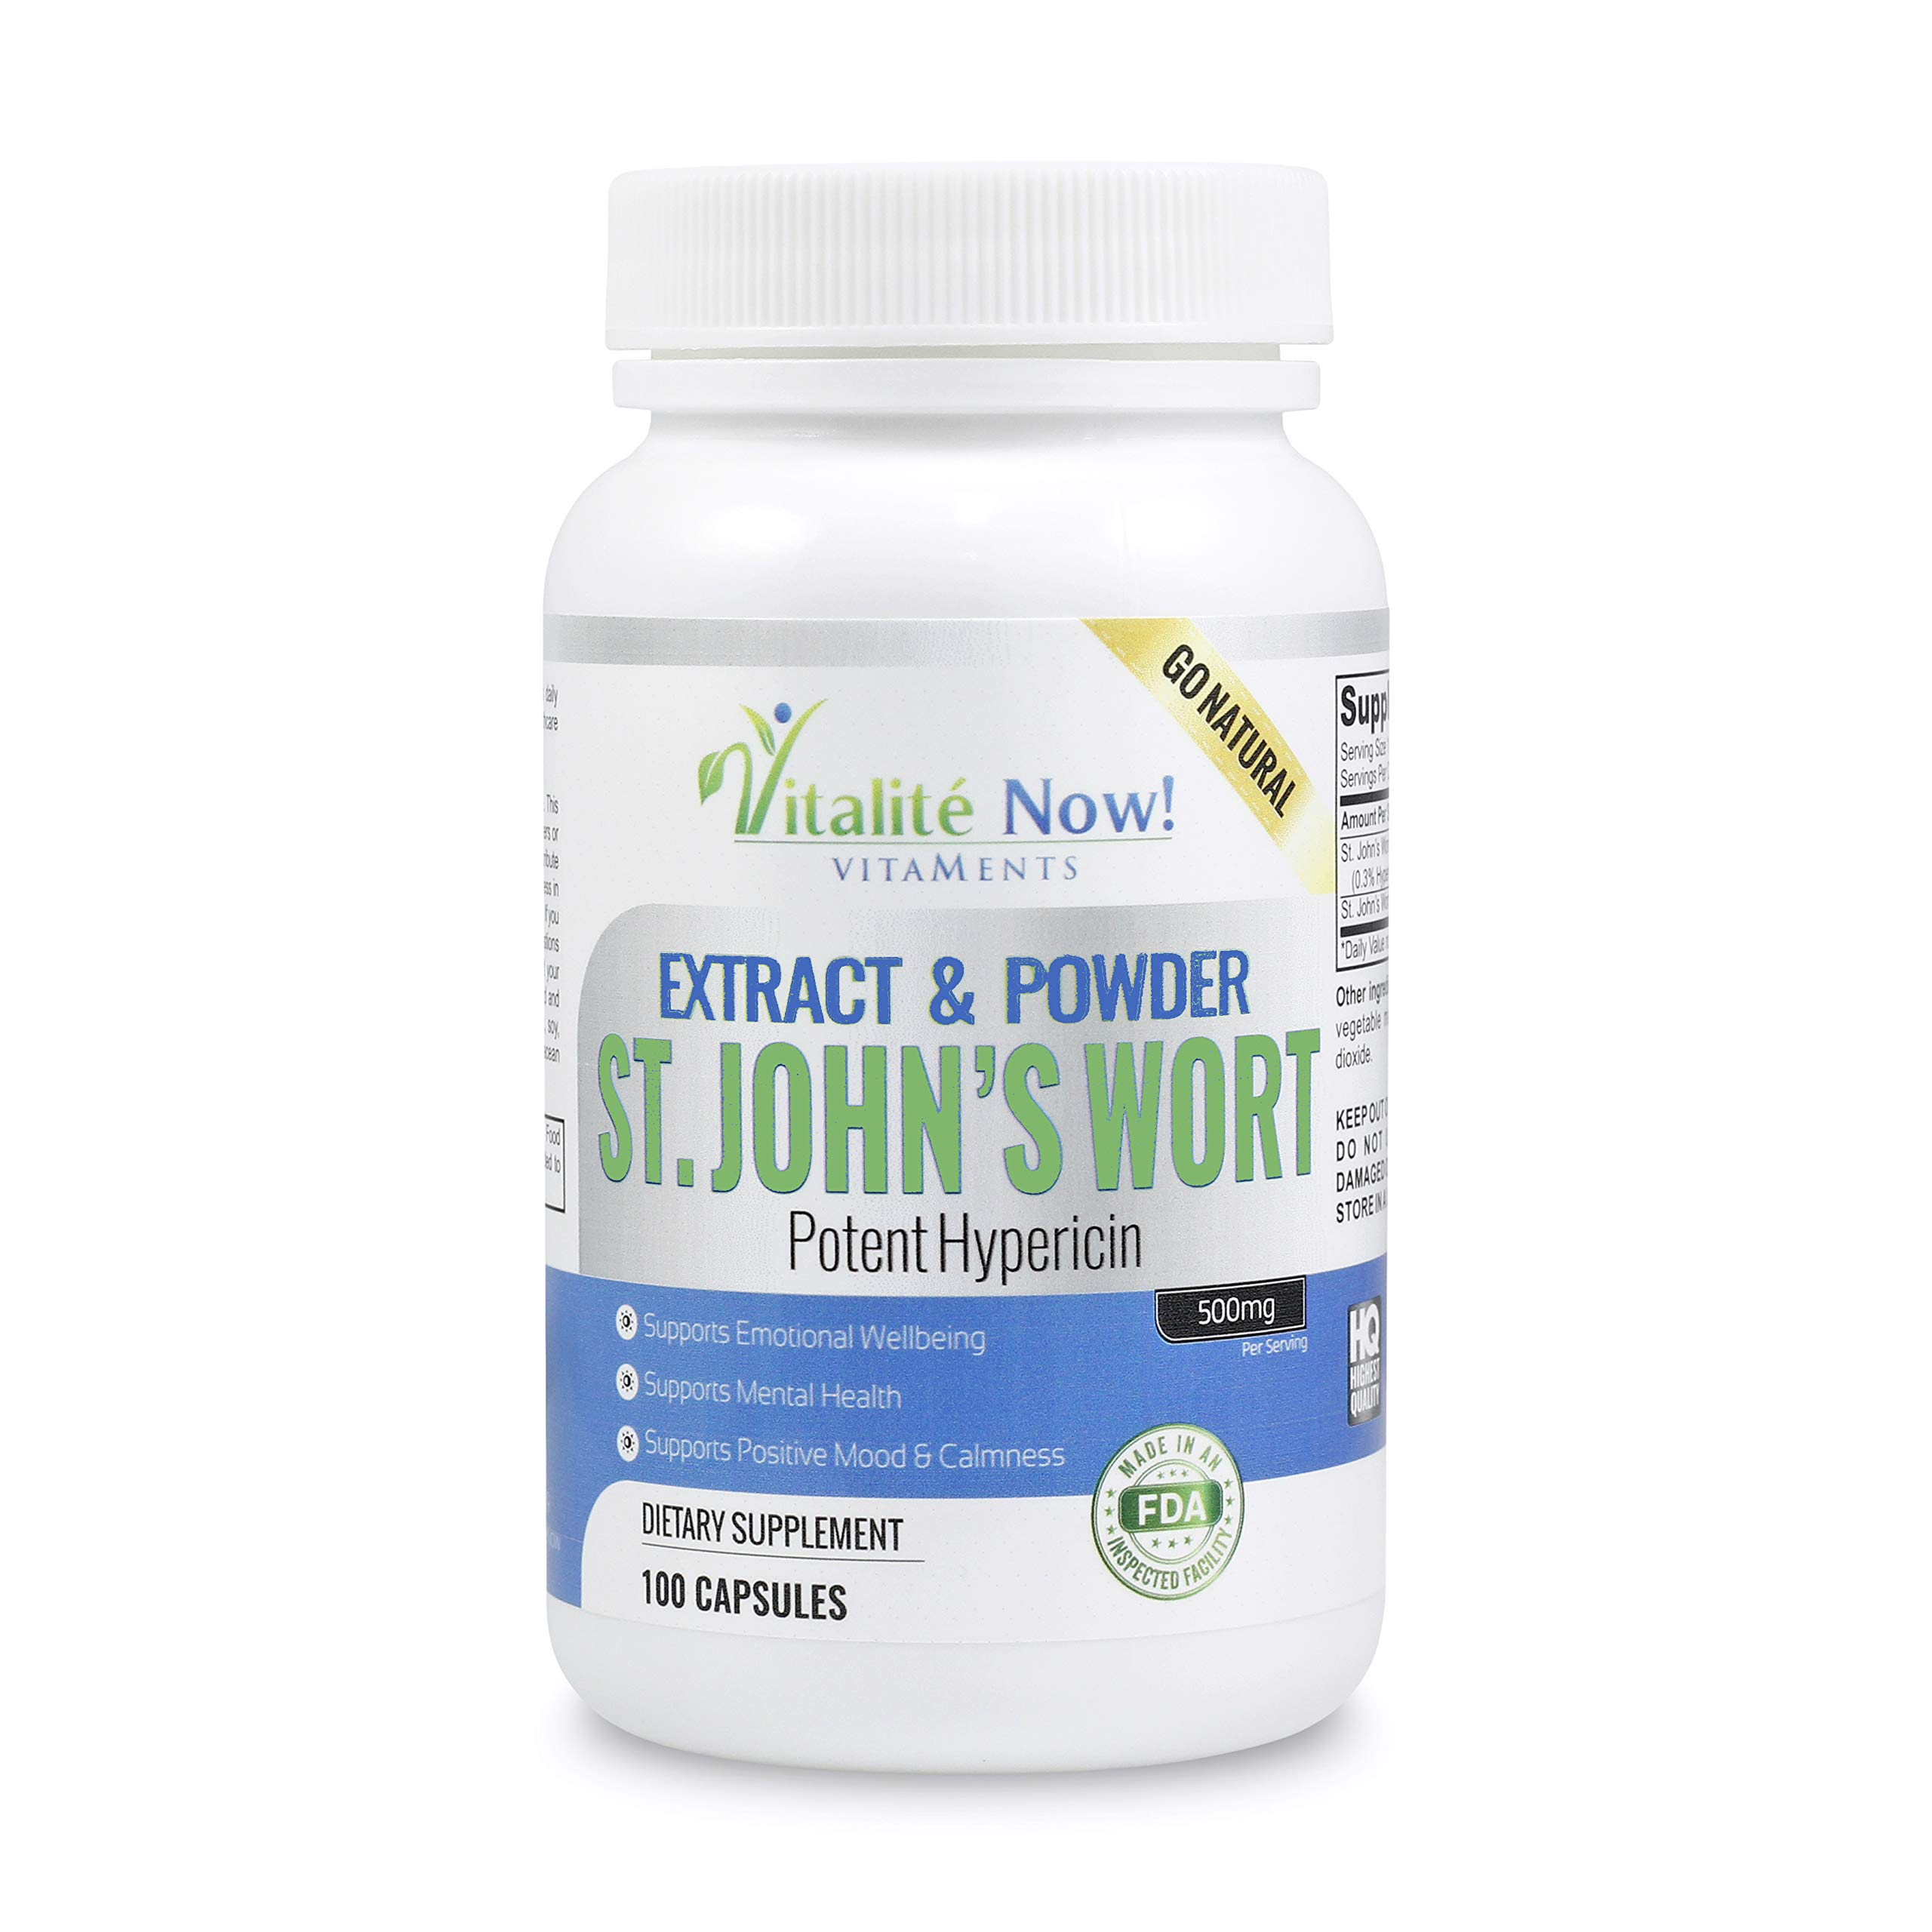 Calming St. John's Wort Extract & Whole Flower - Promotes Emotional Wellbeing, Mental Health, Relaxation, Positive Mood - 500mg Extract & Powder - 900mcg Hypericin - Non-GMO - 100 Pills